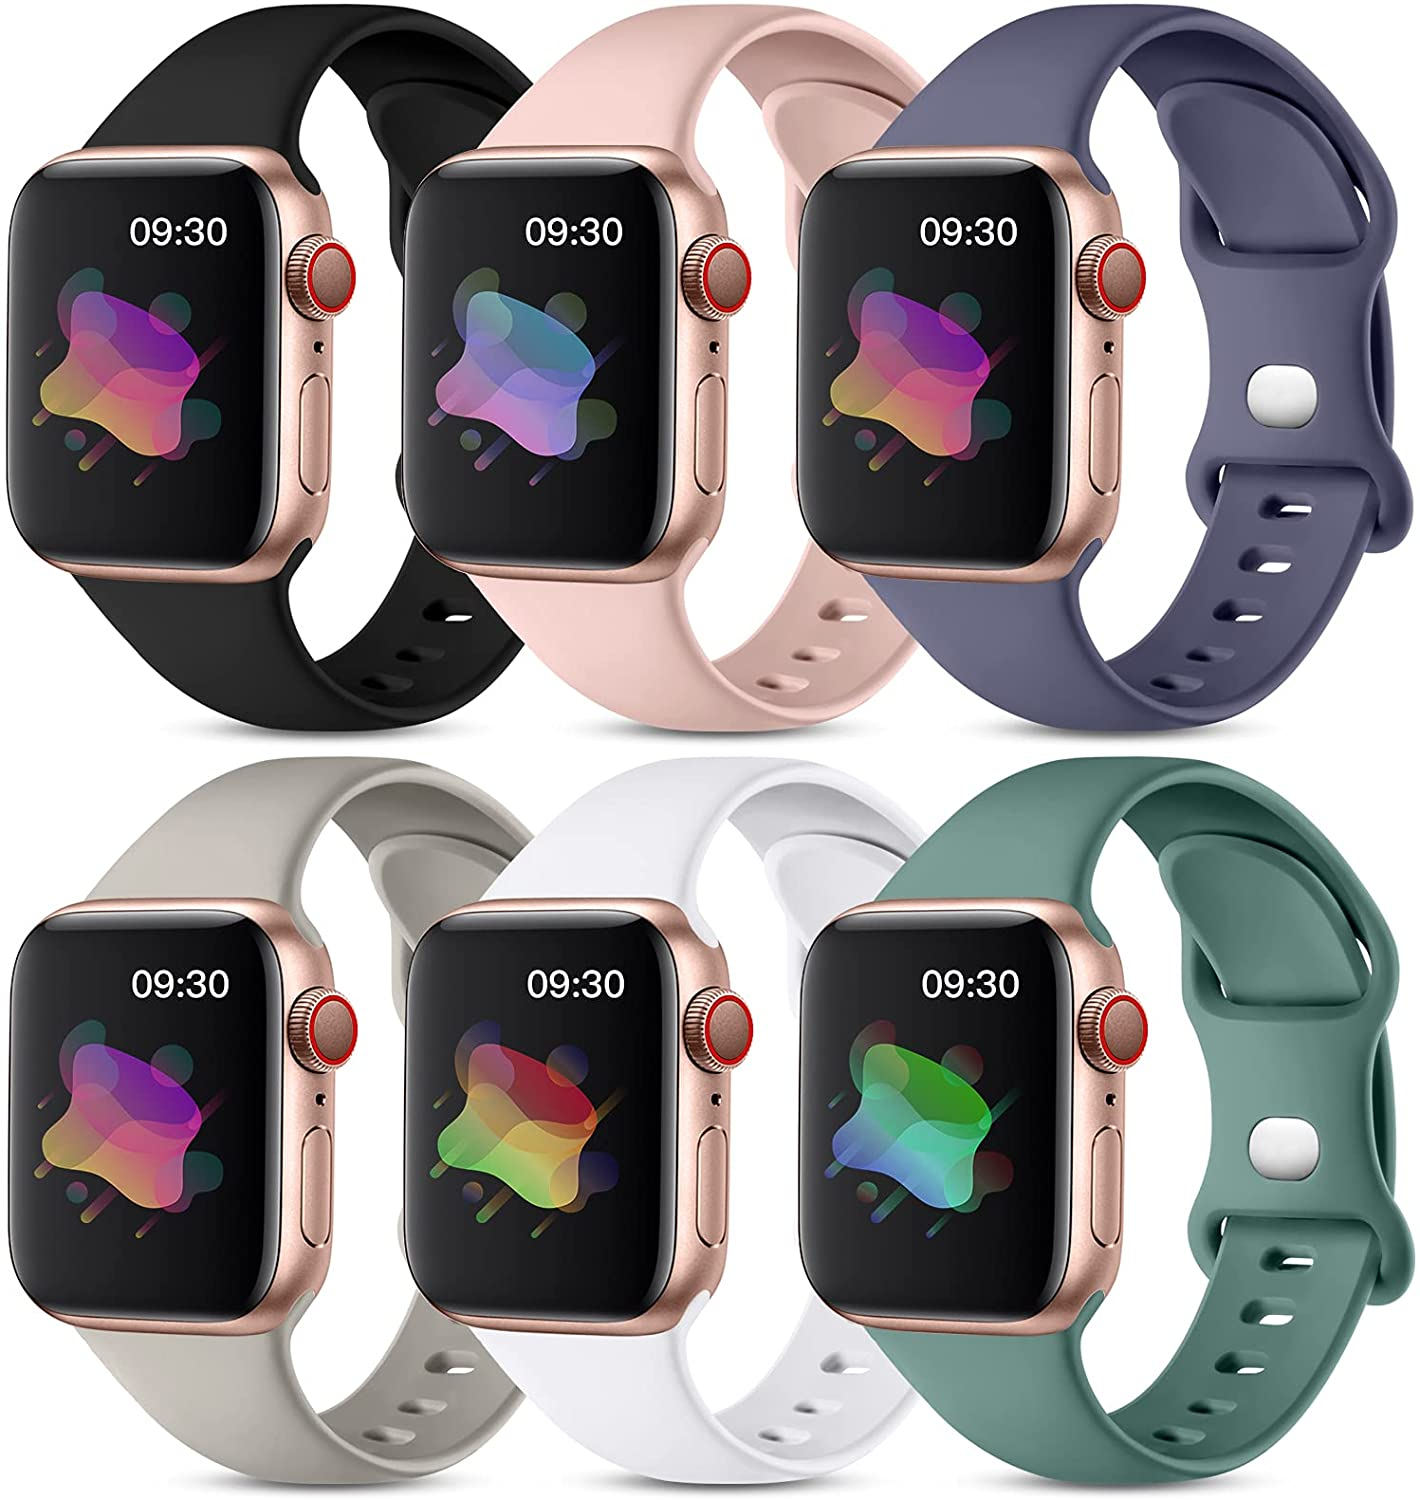 Maledan 6 Pack Bands Compatible with Apple Watch Band 40mm 38mm 44mm 42mm Women Men, Soft Silicone Waterproof Sport Strap Replacement Wristbands for iWatch Series 6 5 4 3 2 1 SE Small Large